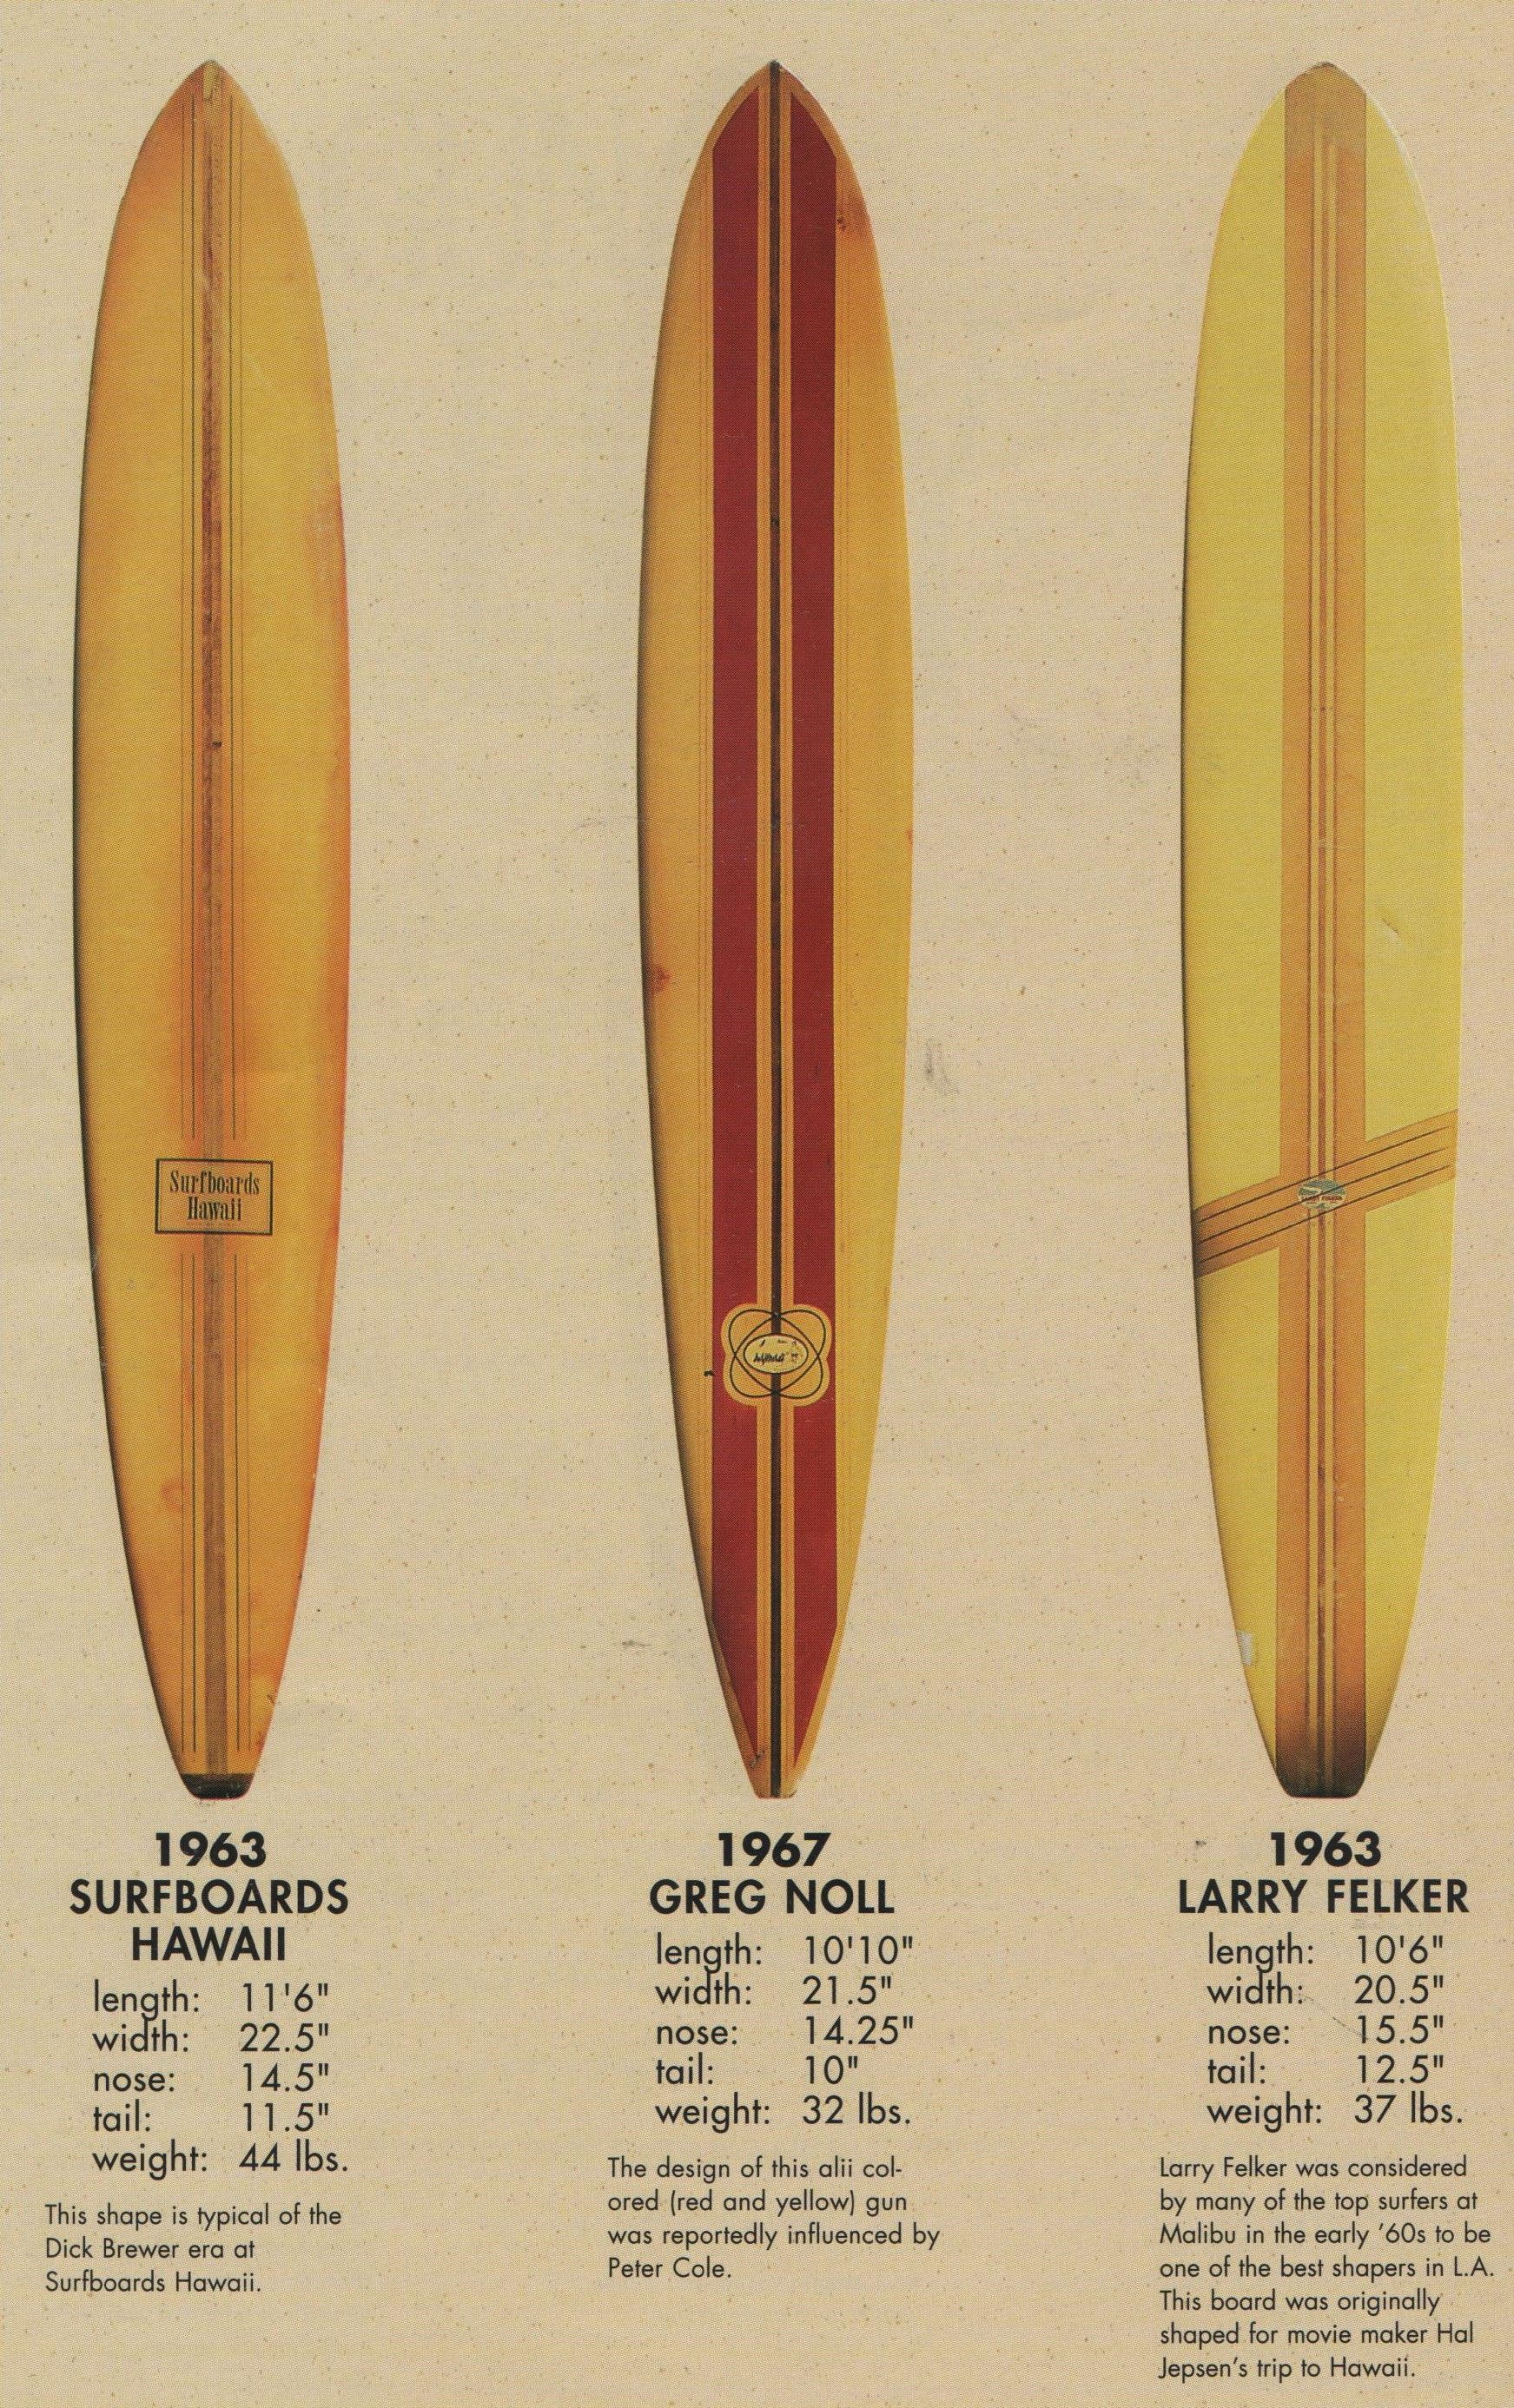 Surfboard Design In 2019 Luau Surfboard Vintage Surfboards